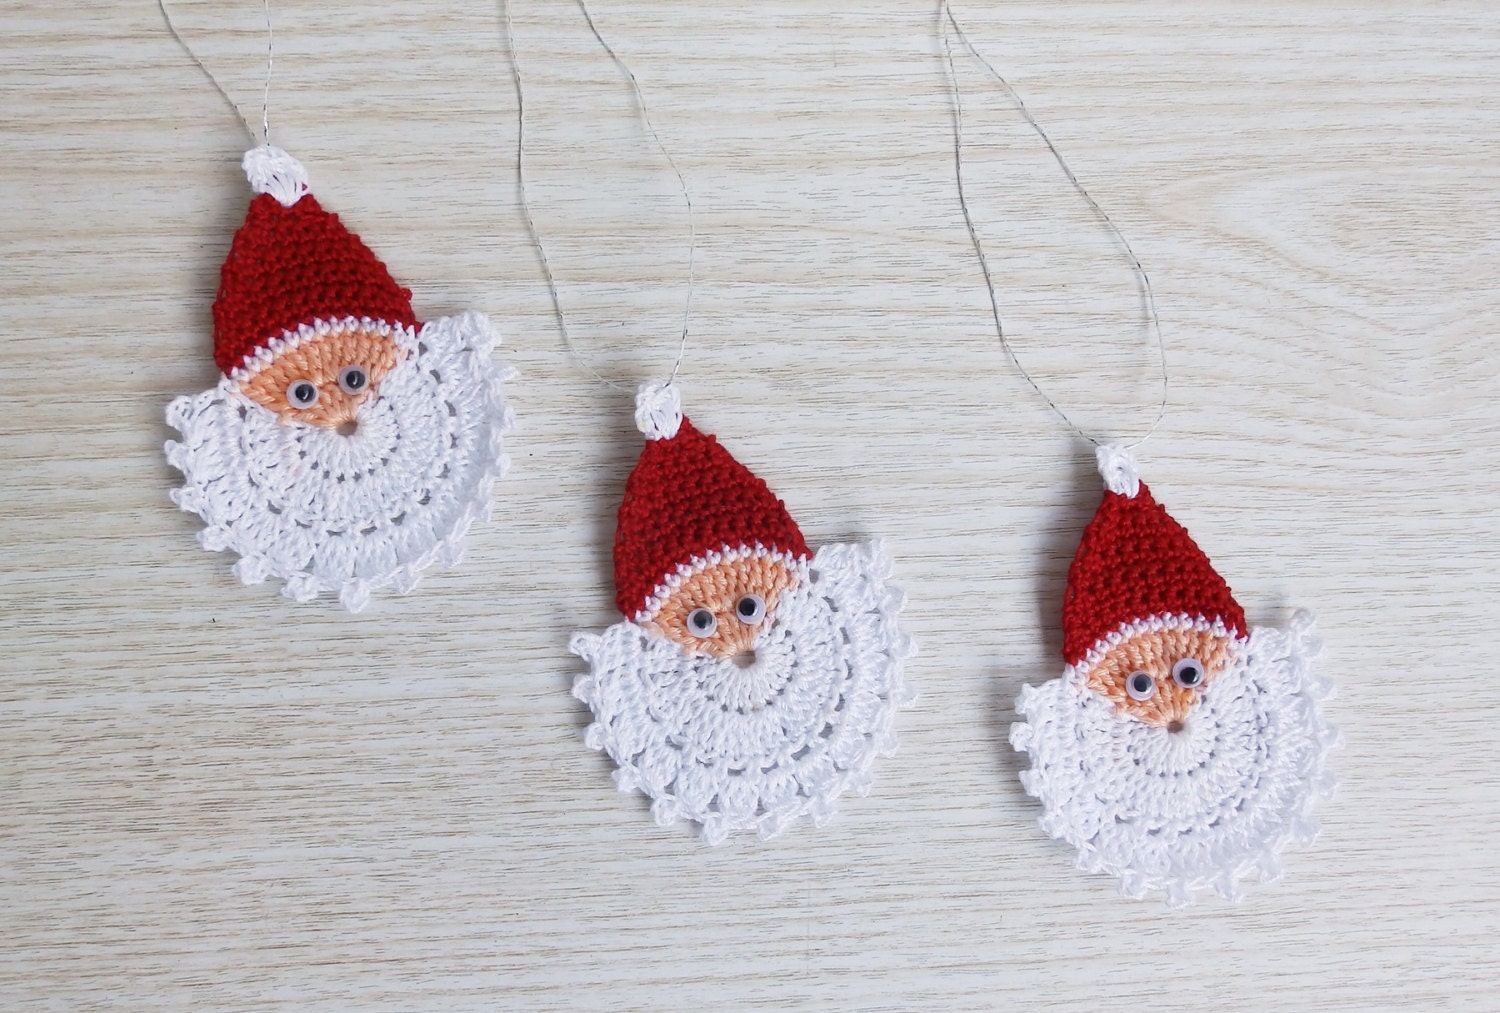 Crochet Santa Claus Face Crochet Christmas Ornament Set Of 3 Etsy